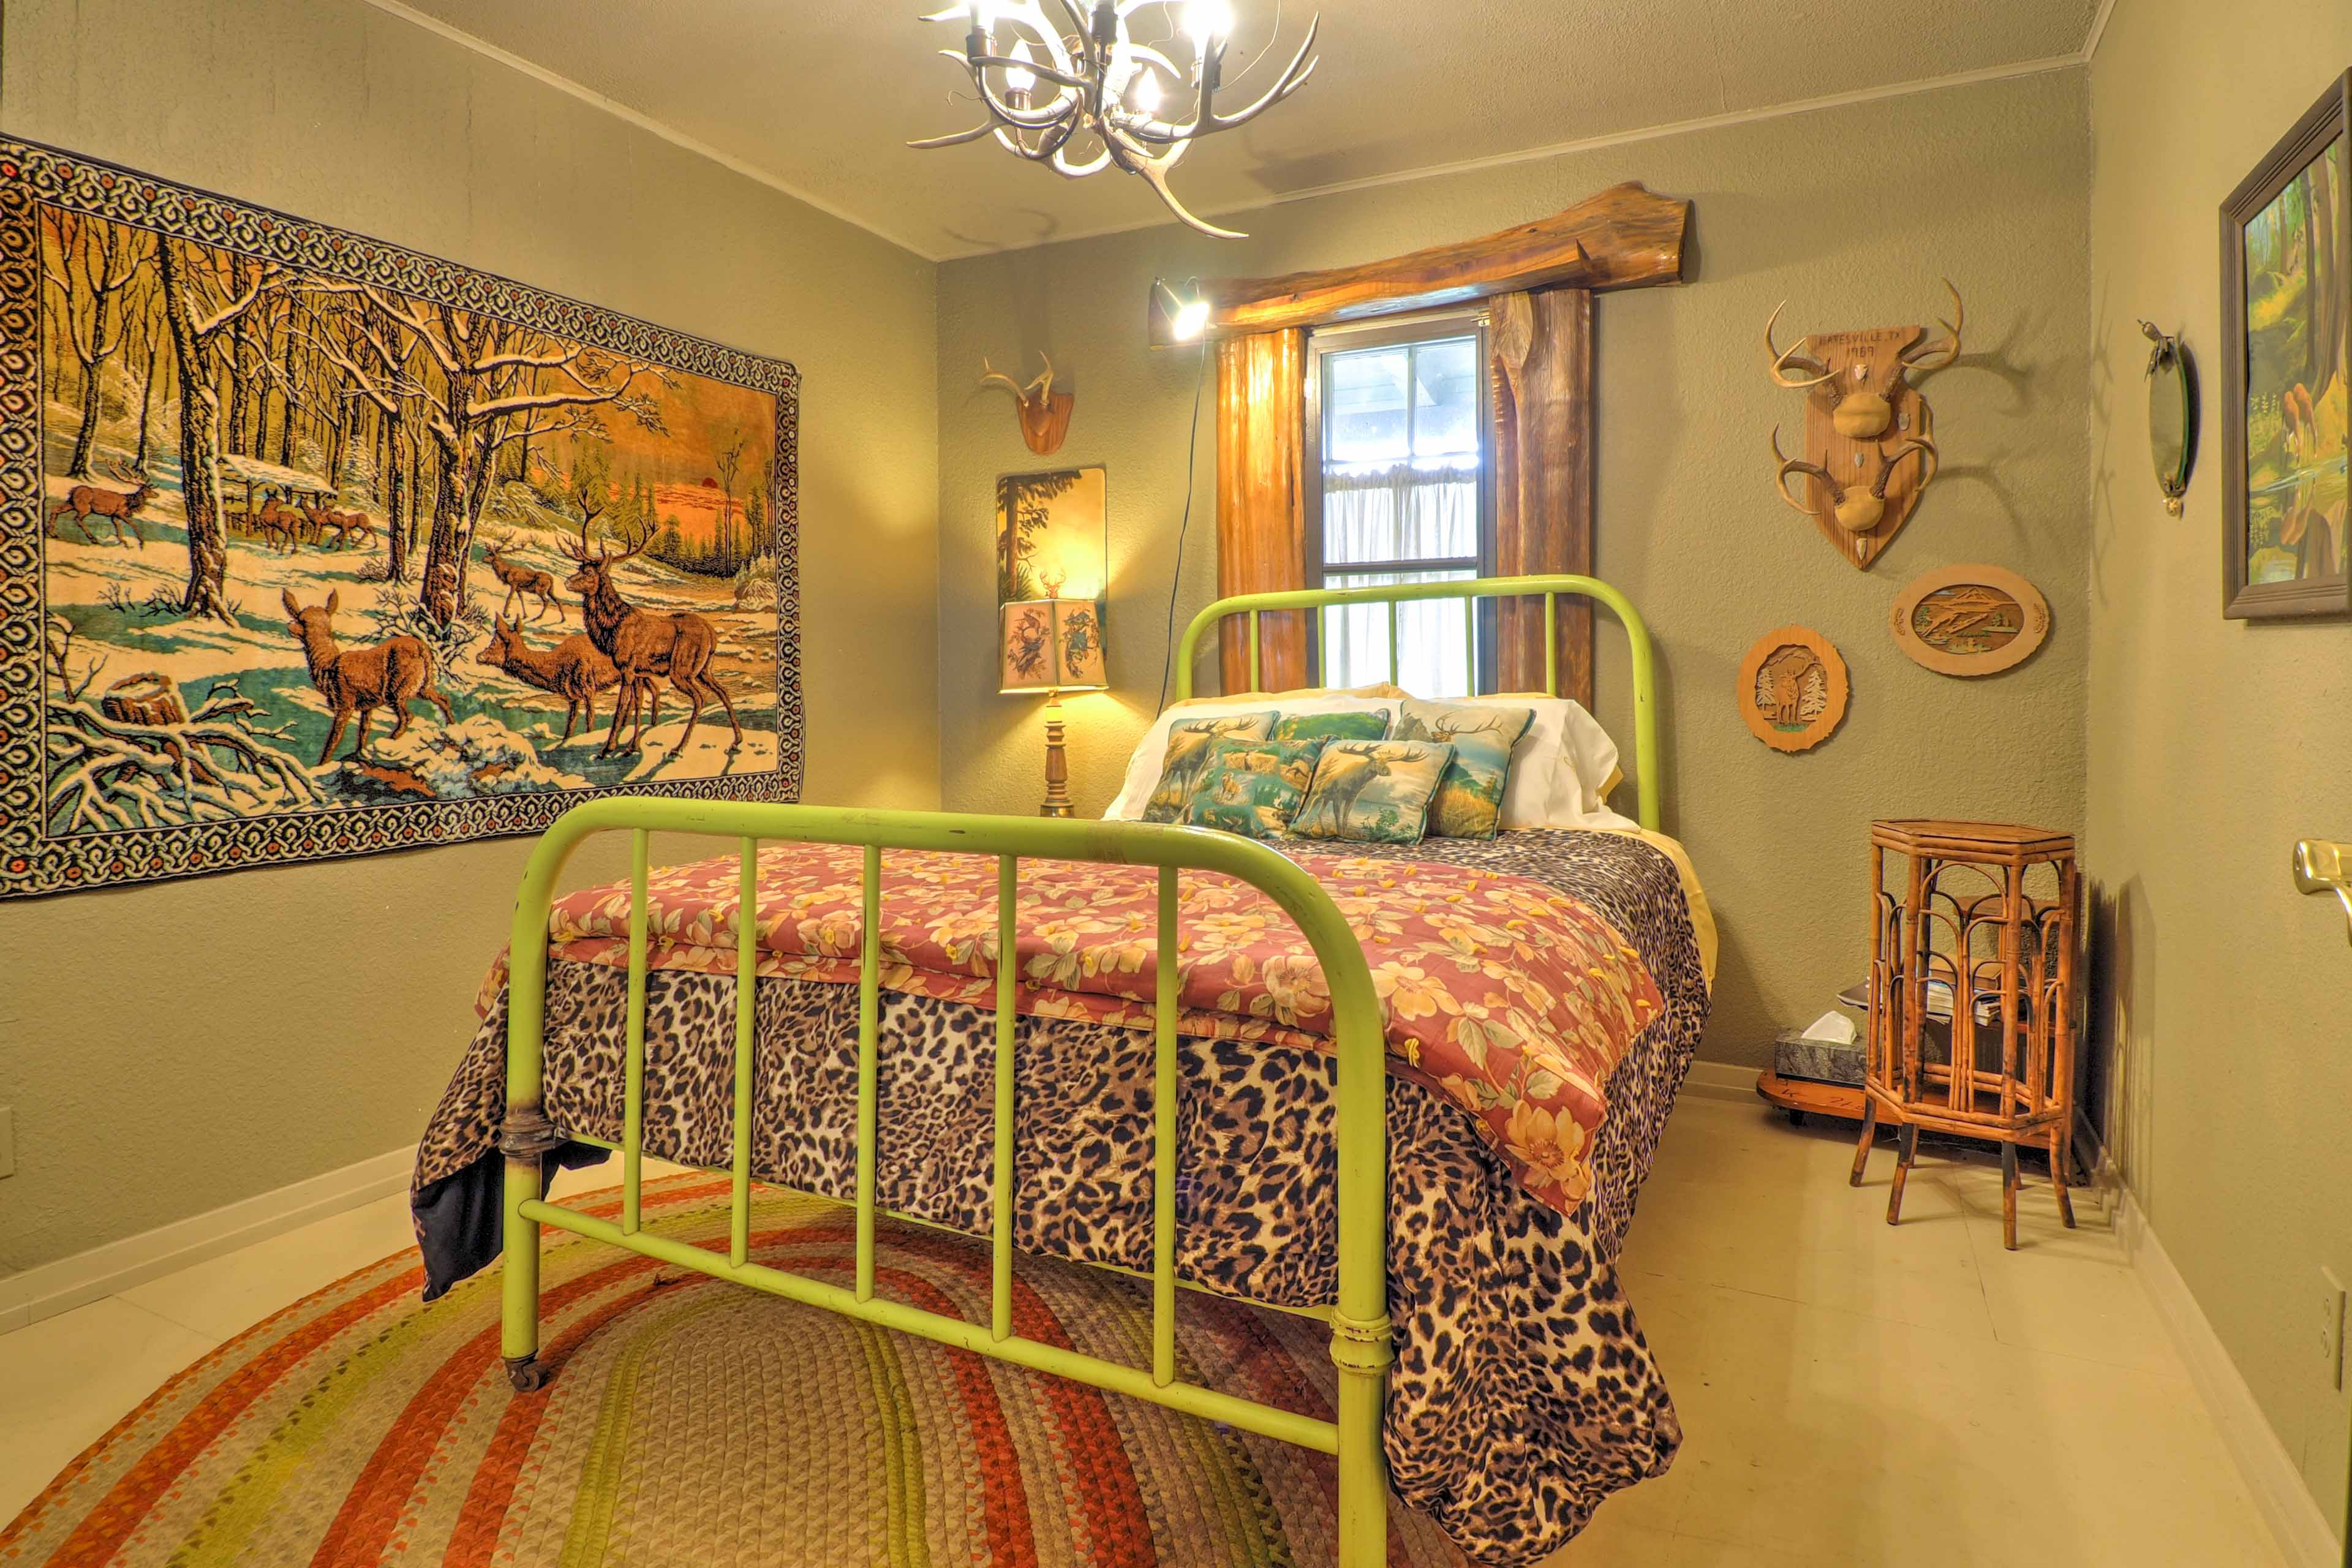 Make yourself at home in this bedroom.